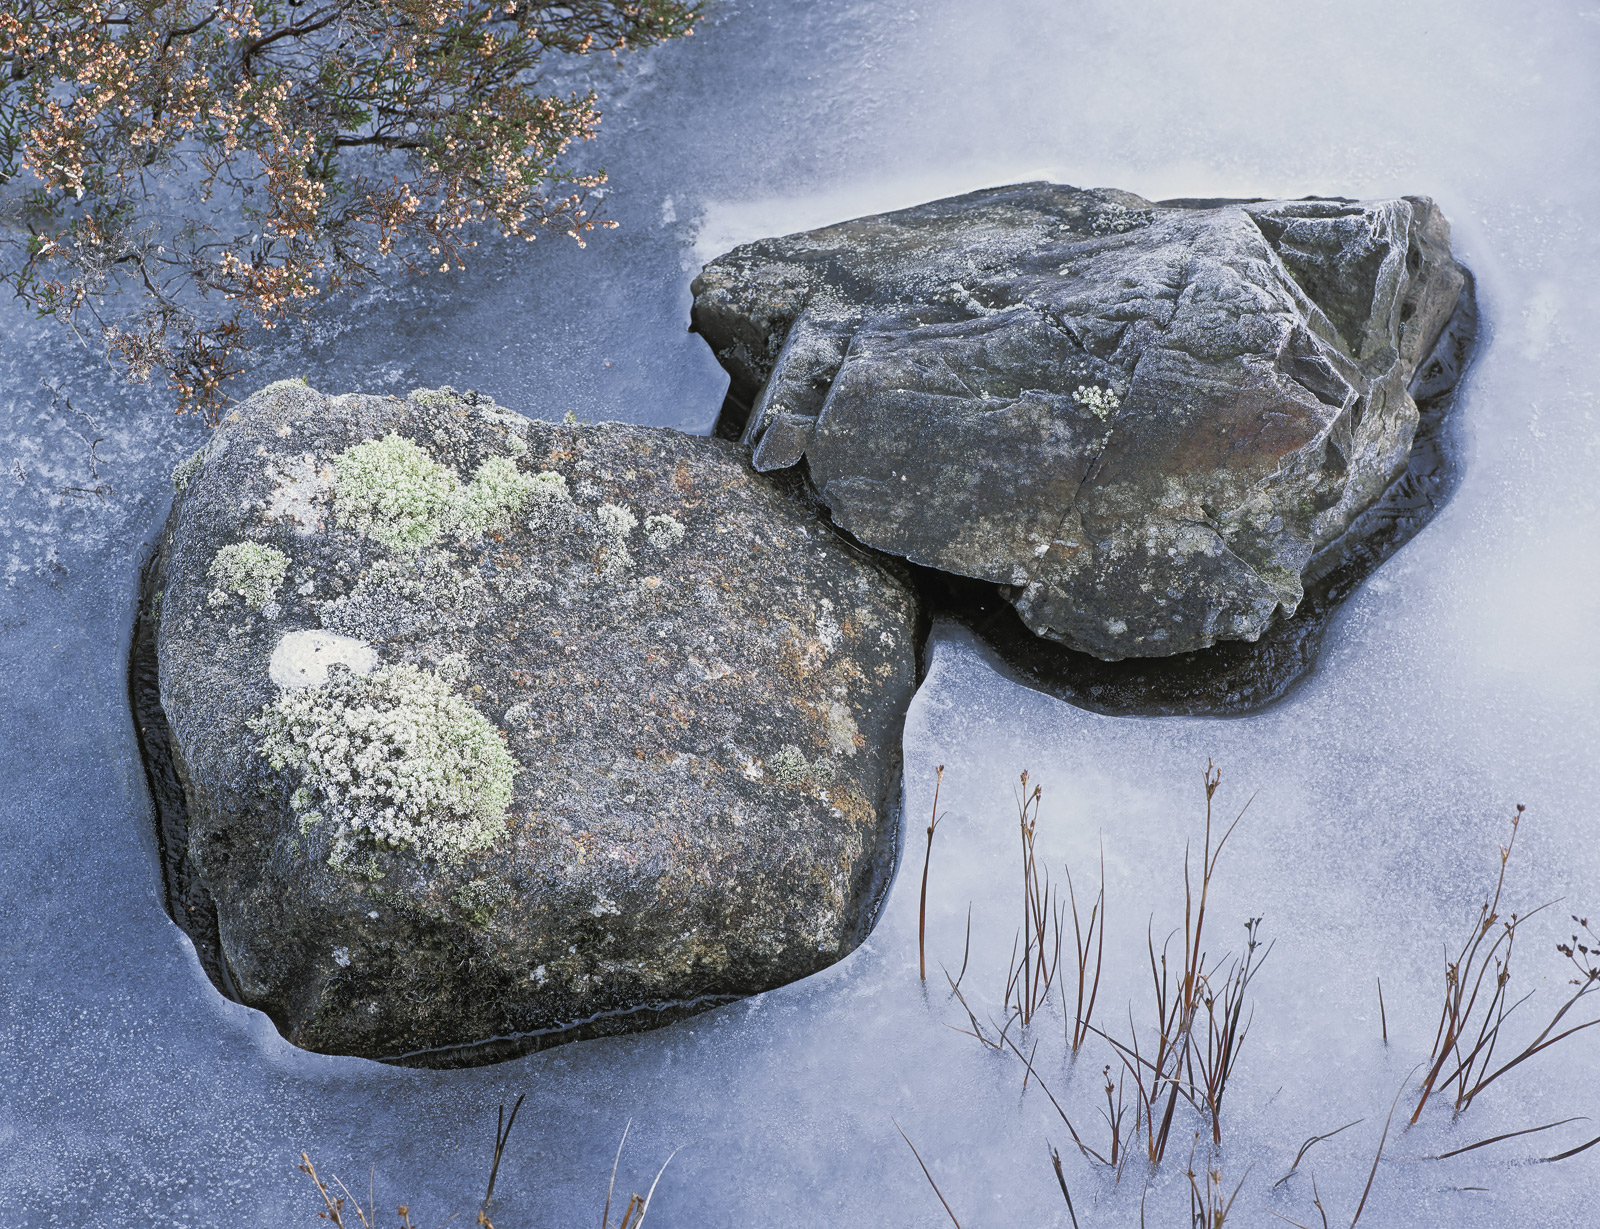 These two rocks dappled with the lichen and hoar frosted in a bed of icewere beneath a clear blue sky as a consequence the ice...